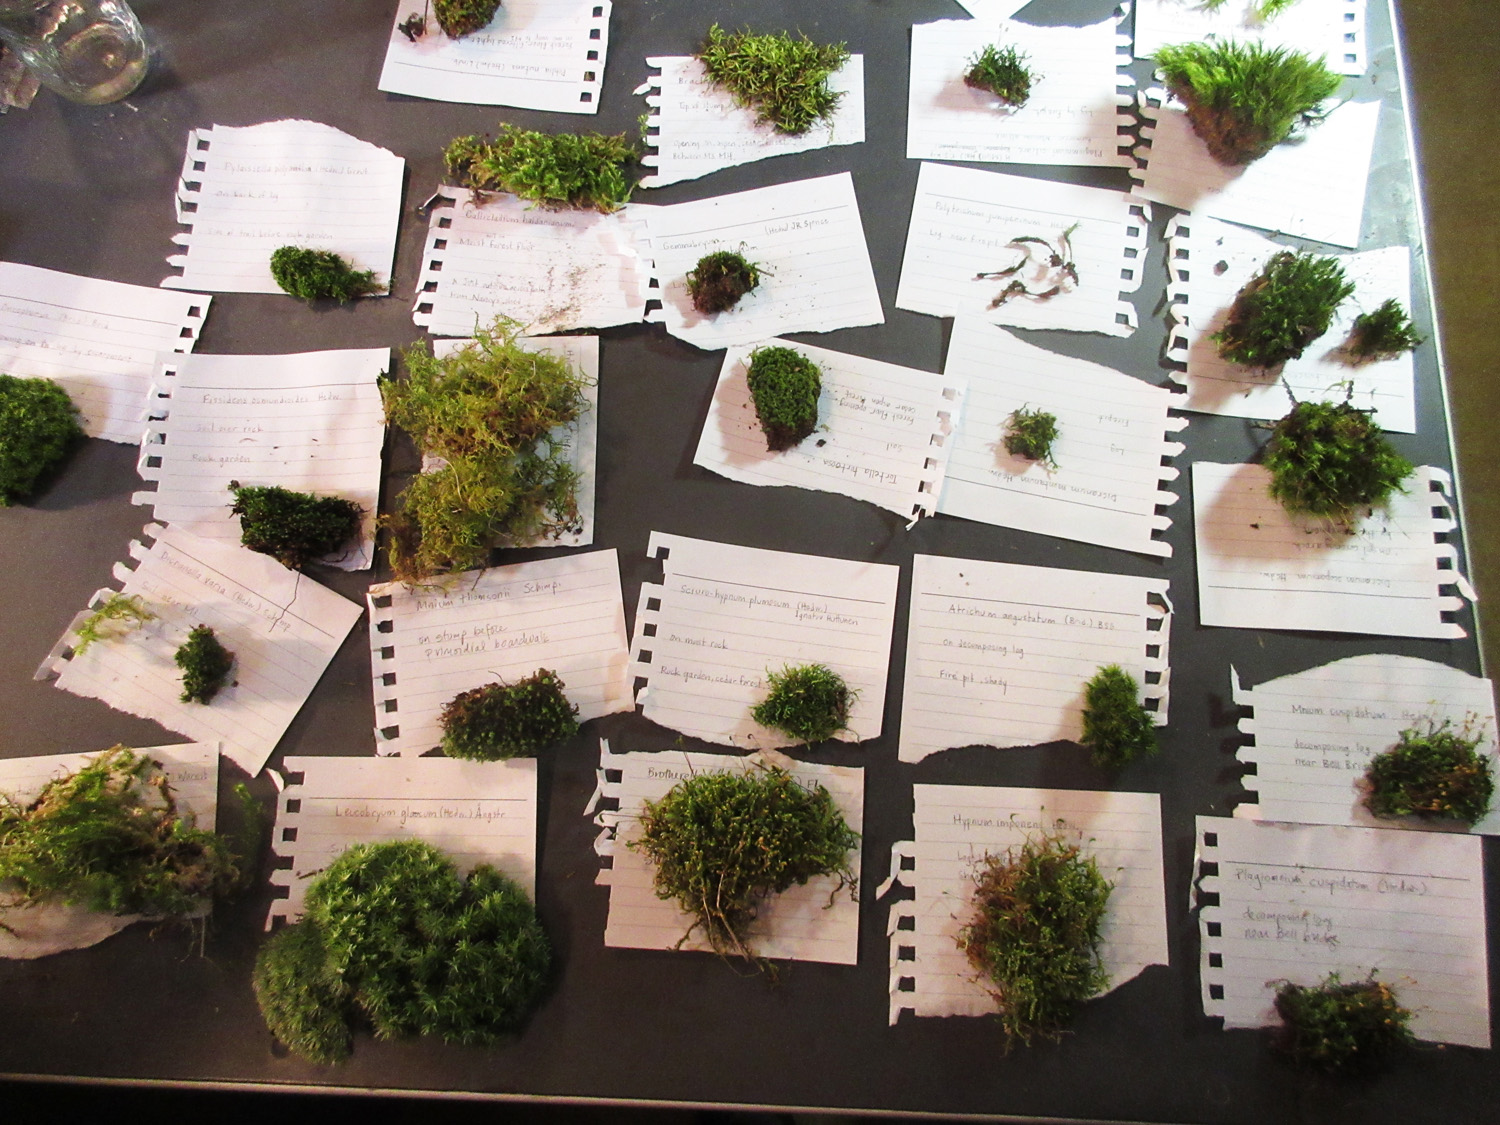 Jamie Ferschinger, moss survey